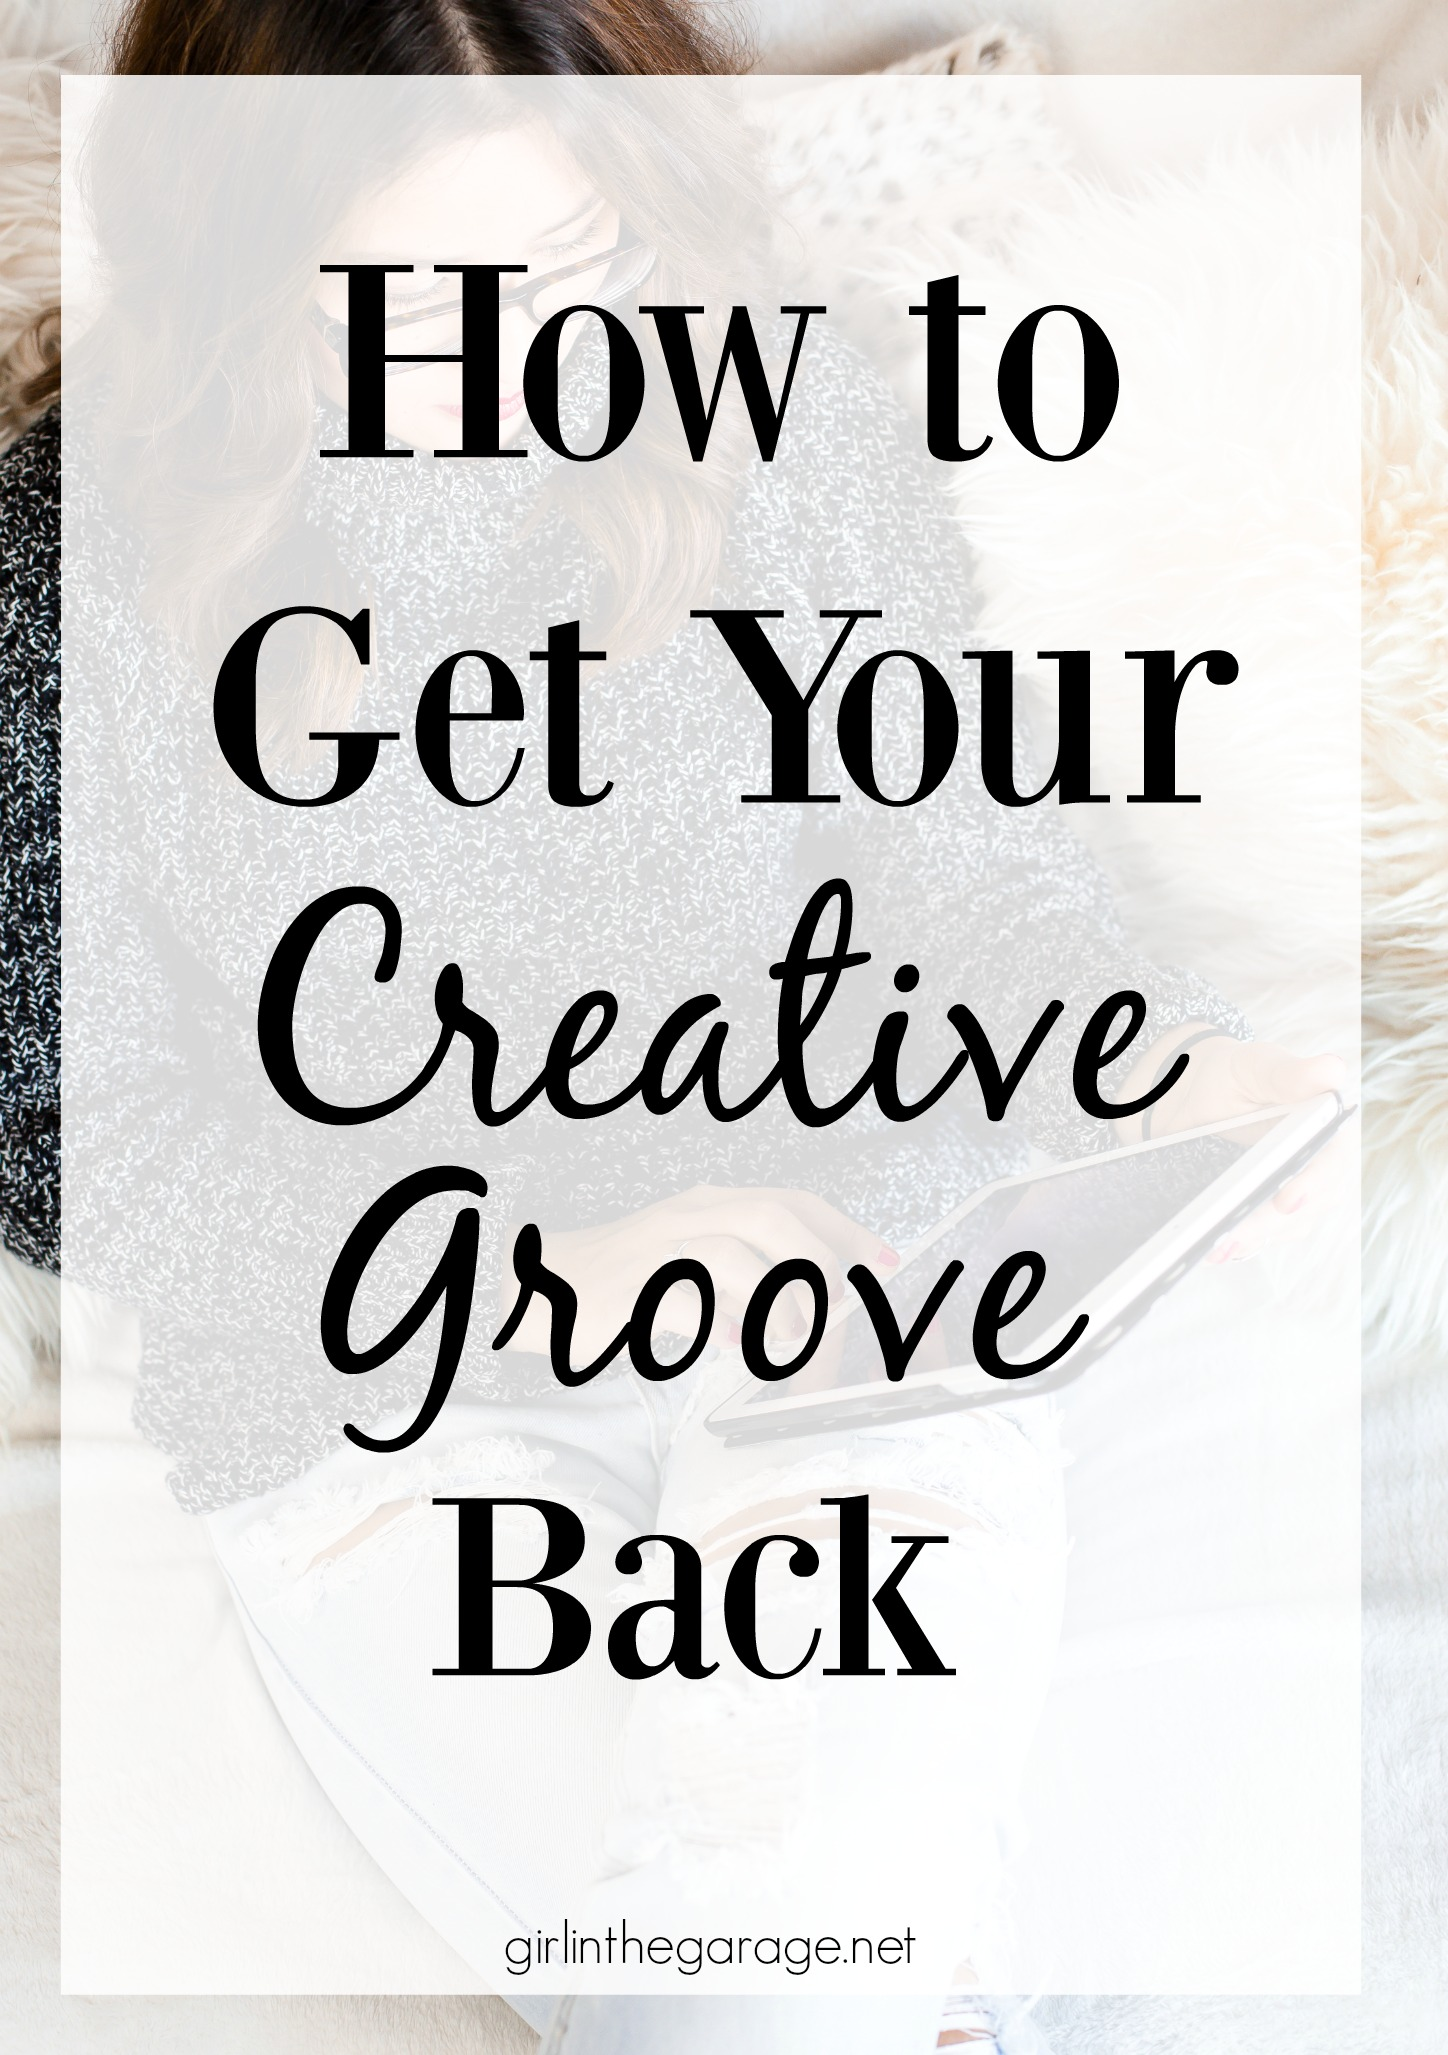 How to get your creative groove back after you've been in a funk - by Girl in the Garage